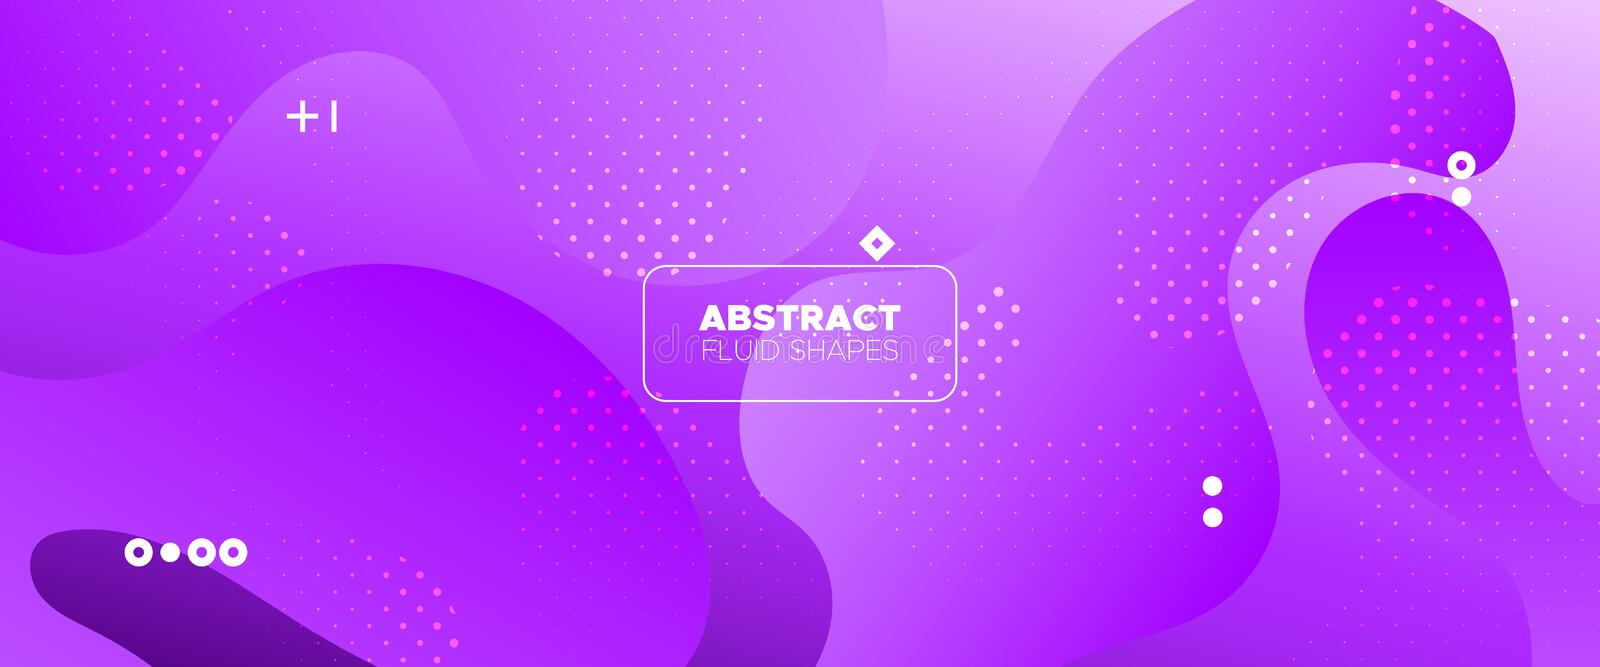 Abstract Flow Design. Light Gradient Poster. Magenta Graphic Movement. Futuristic Concept. Abstract Wave Shapes. Minimal Poster. Vivid Graphic Wallpaper stock illustration